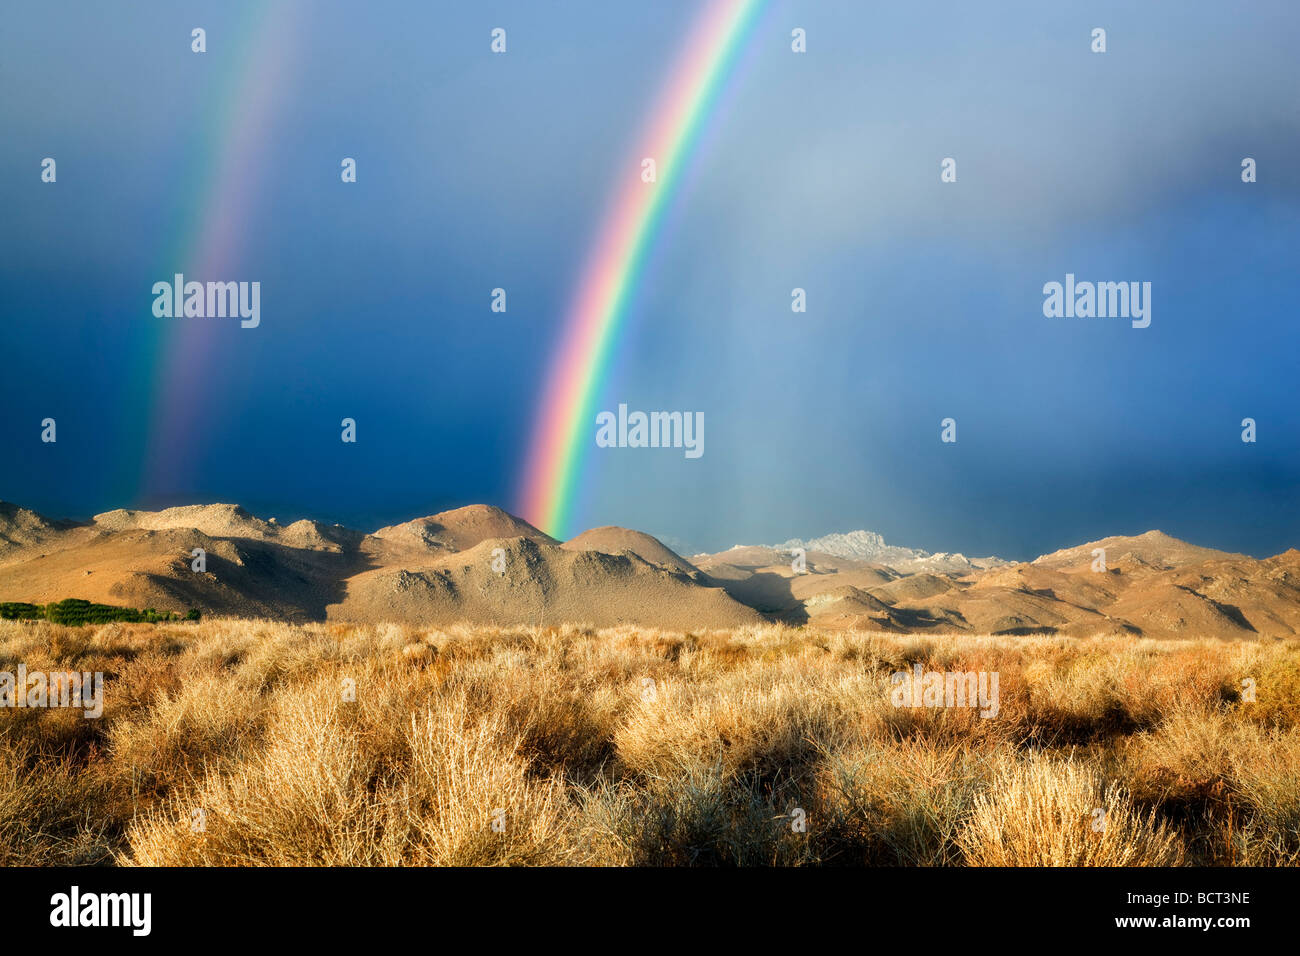 Double rainbow over Eastern Sierra Mountains near Bishop California - Stock Image